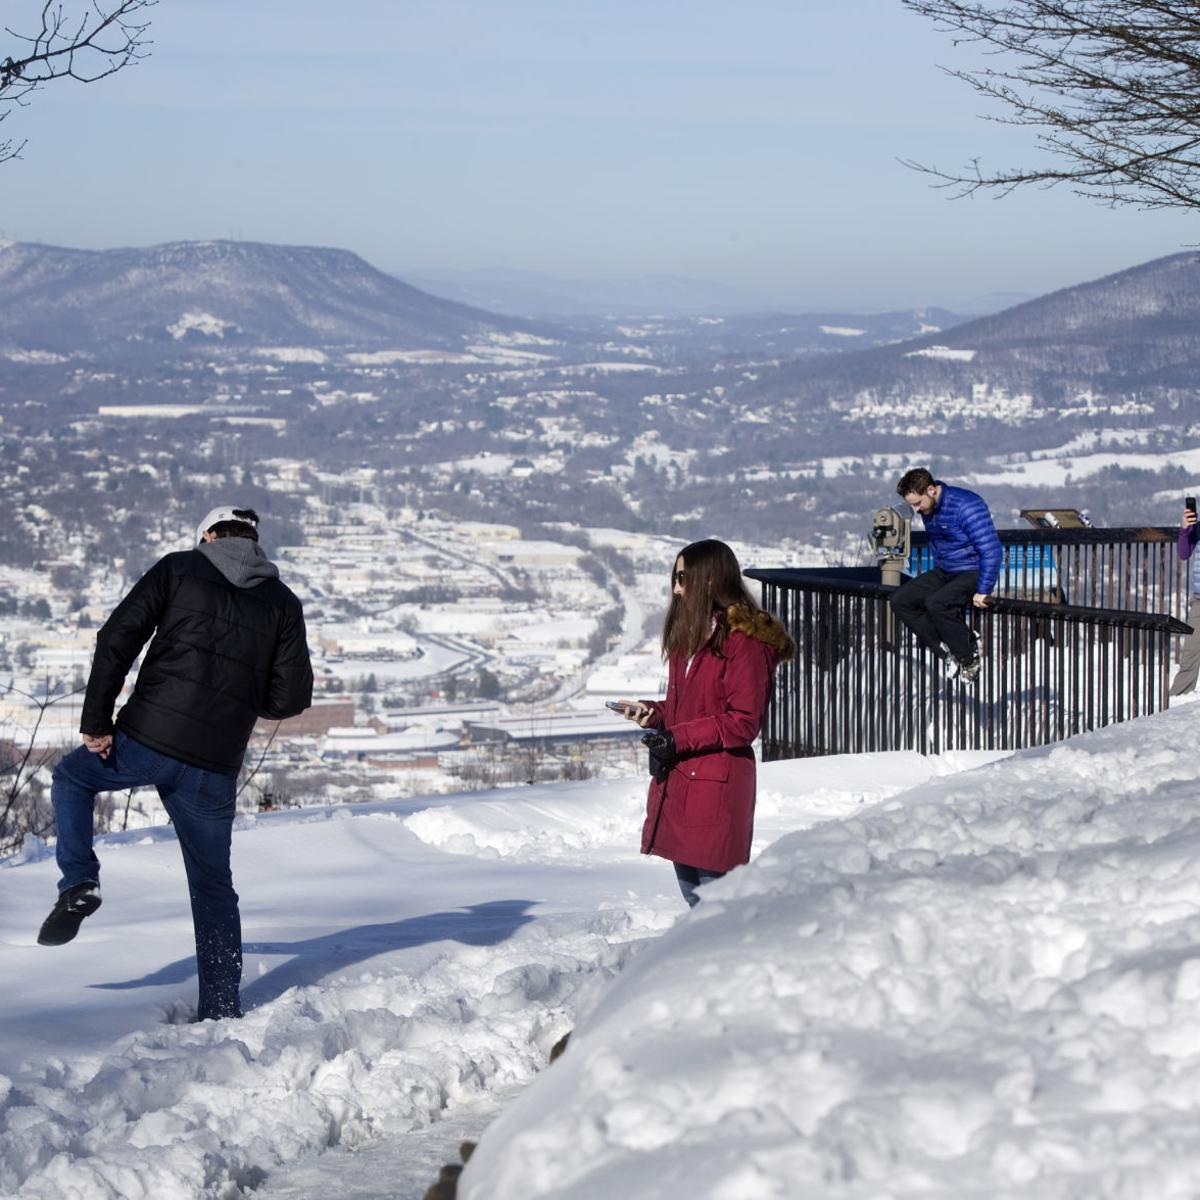 Sunday was Roanoke's snowiest December day on record